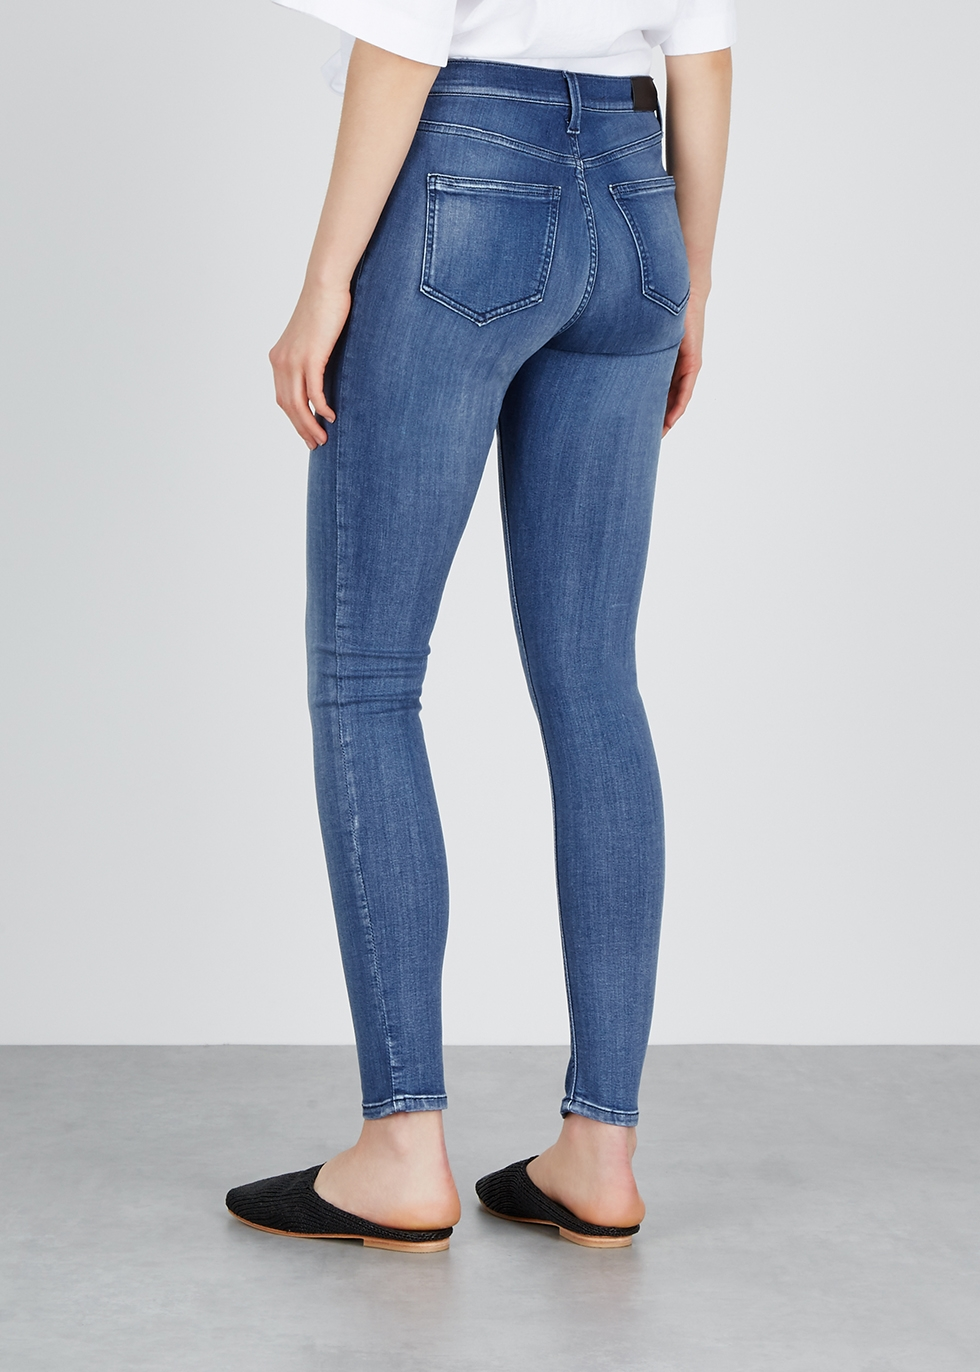 Blue Touch skinny jeans - Replay